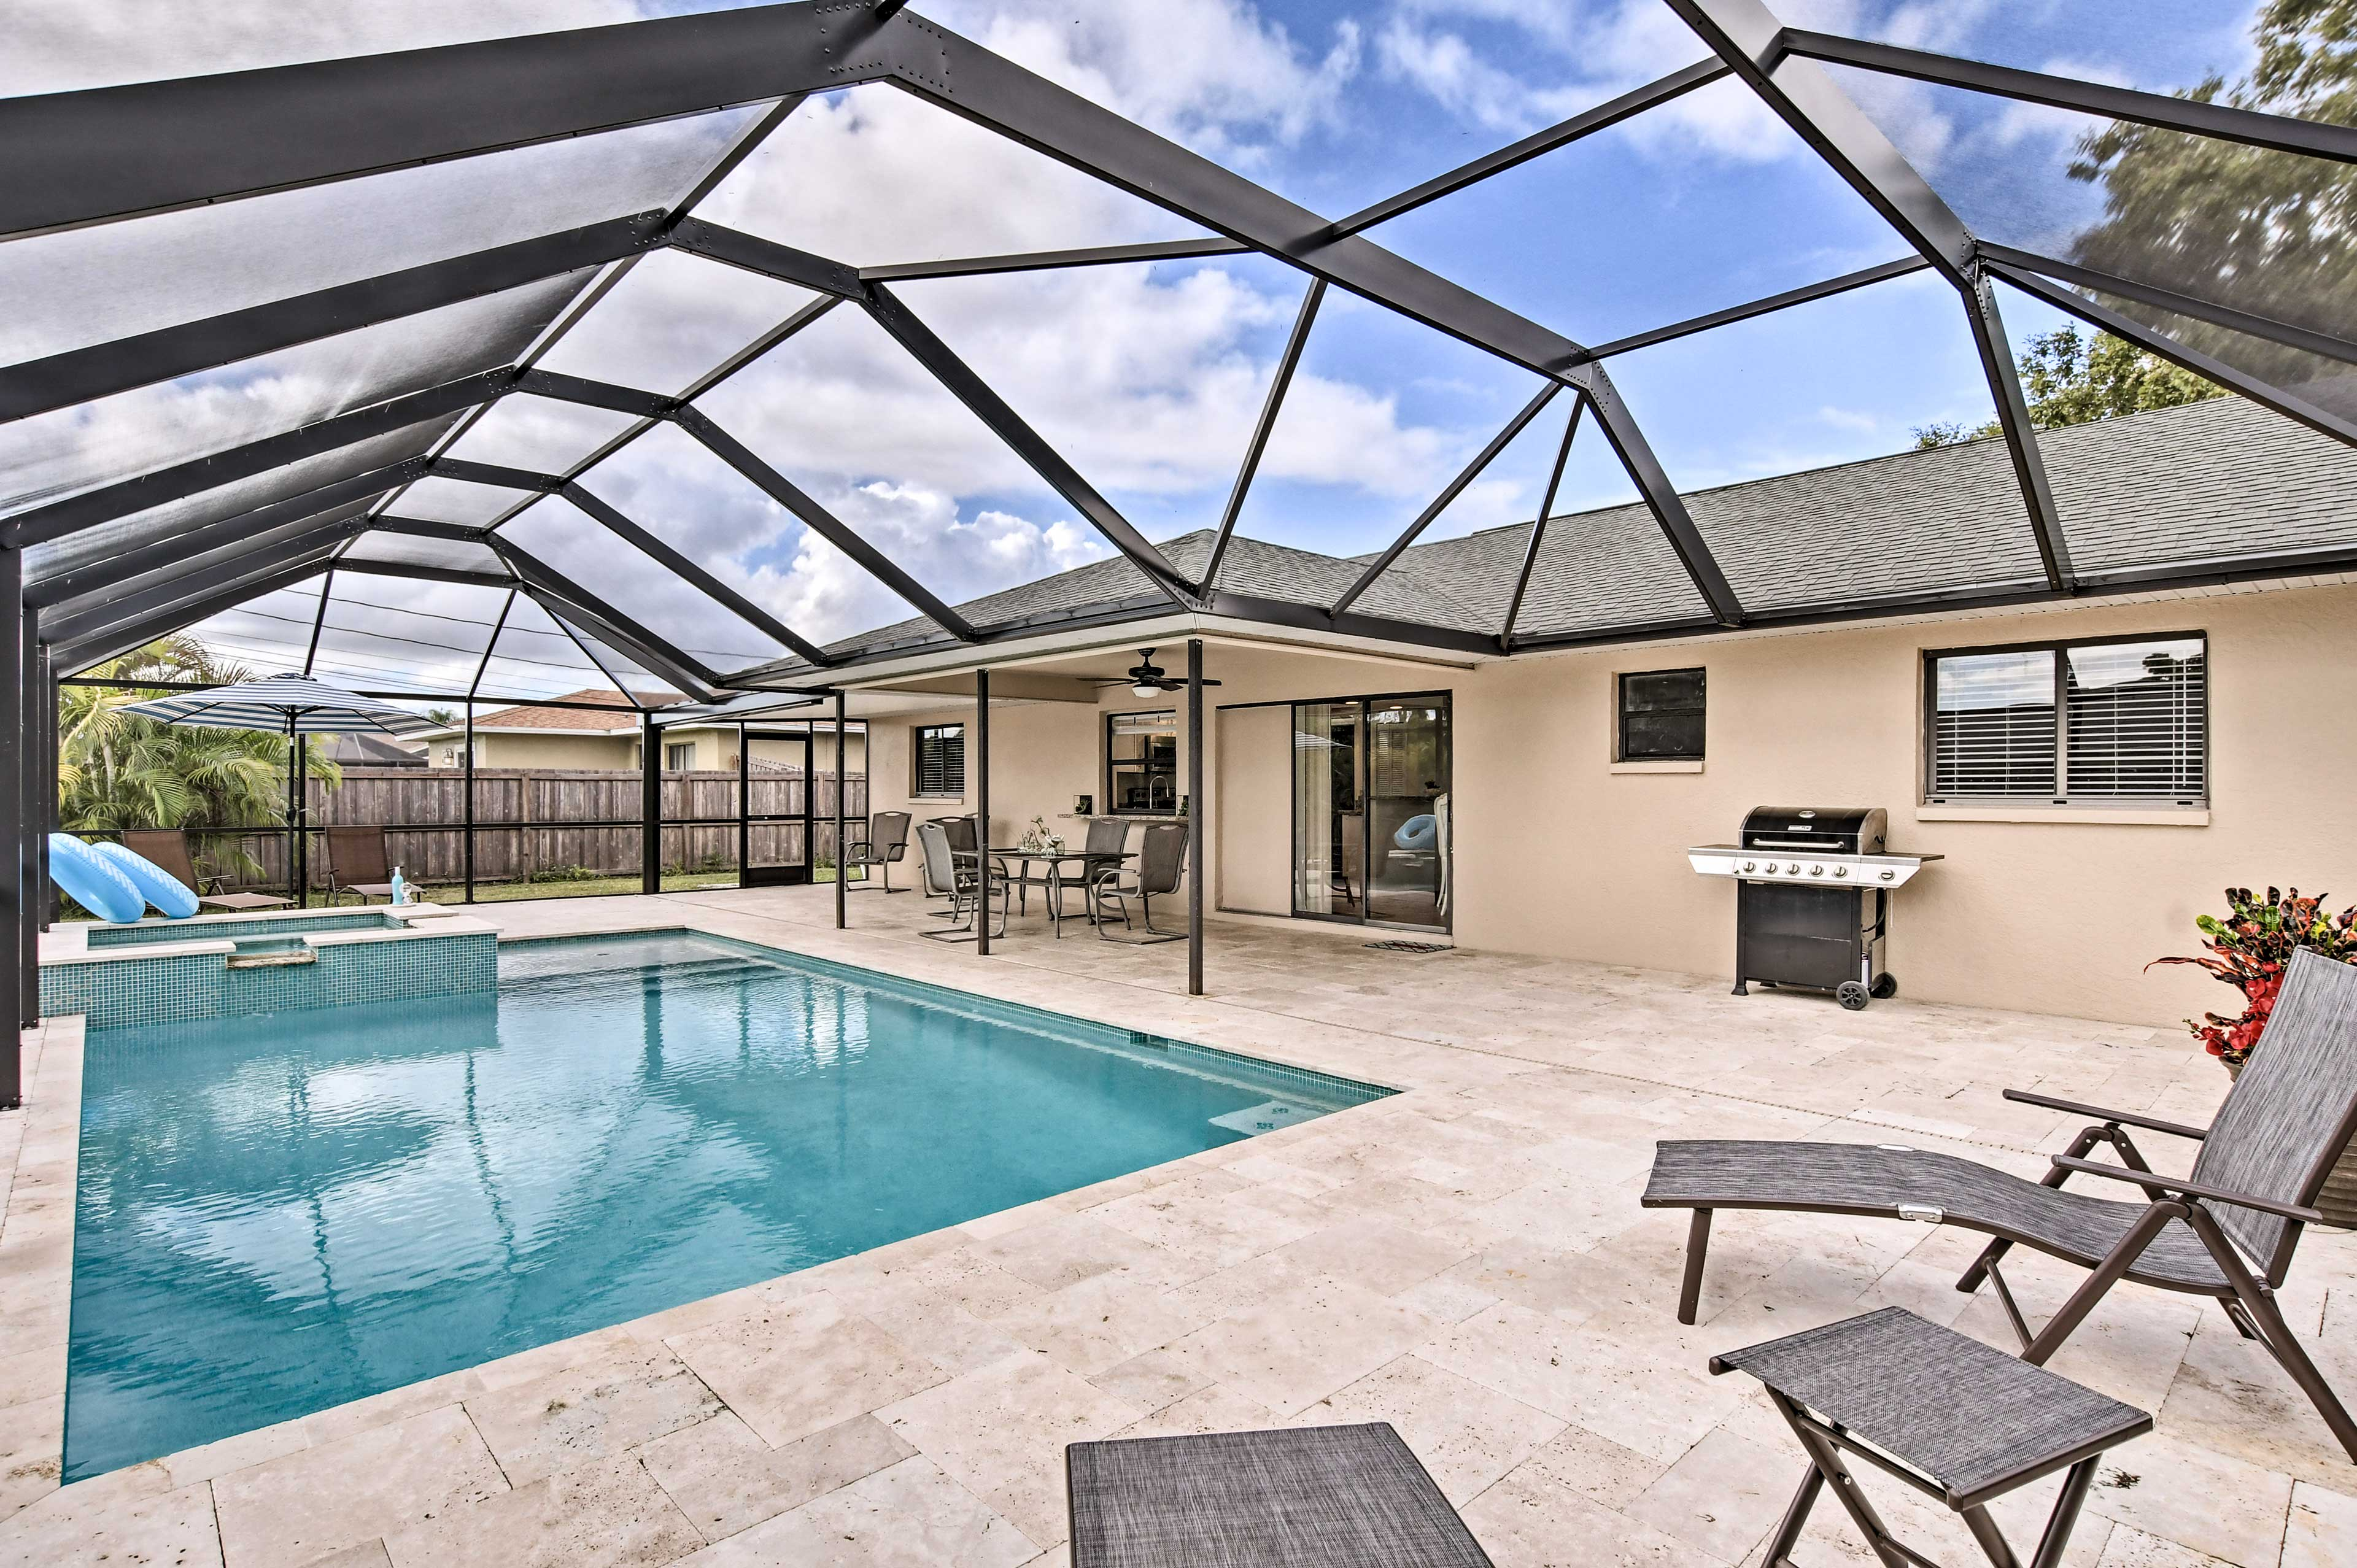 This vacation rental home has a private pool and spa!